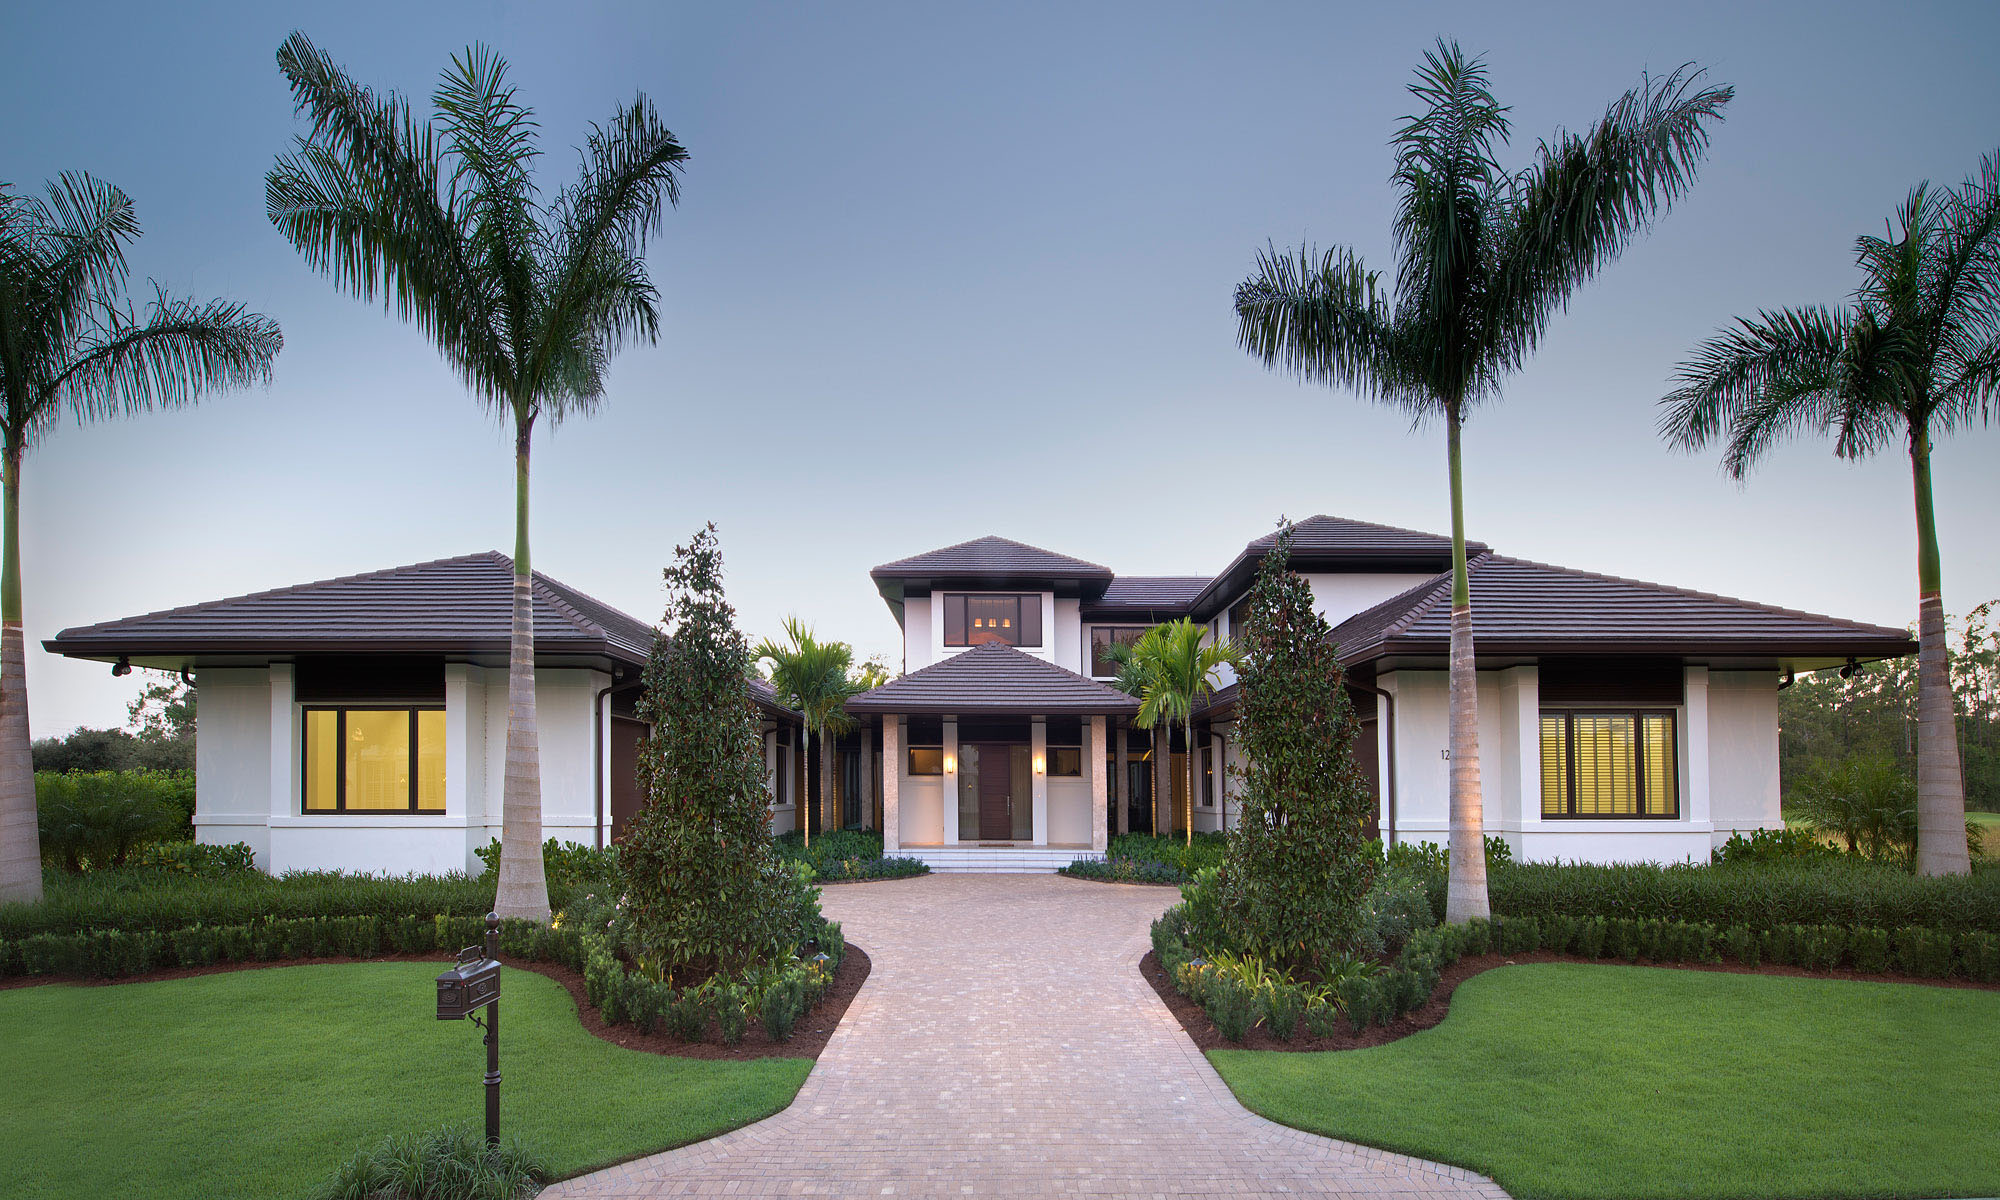 Custom dream home in florida with elegant swimming pool for Custom home plans florida